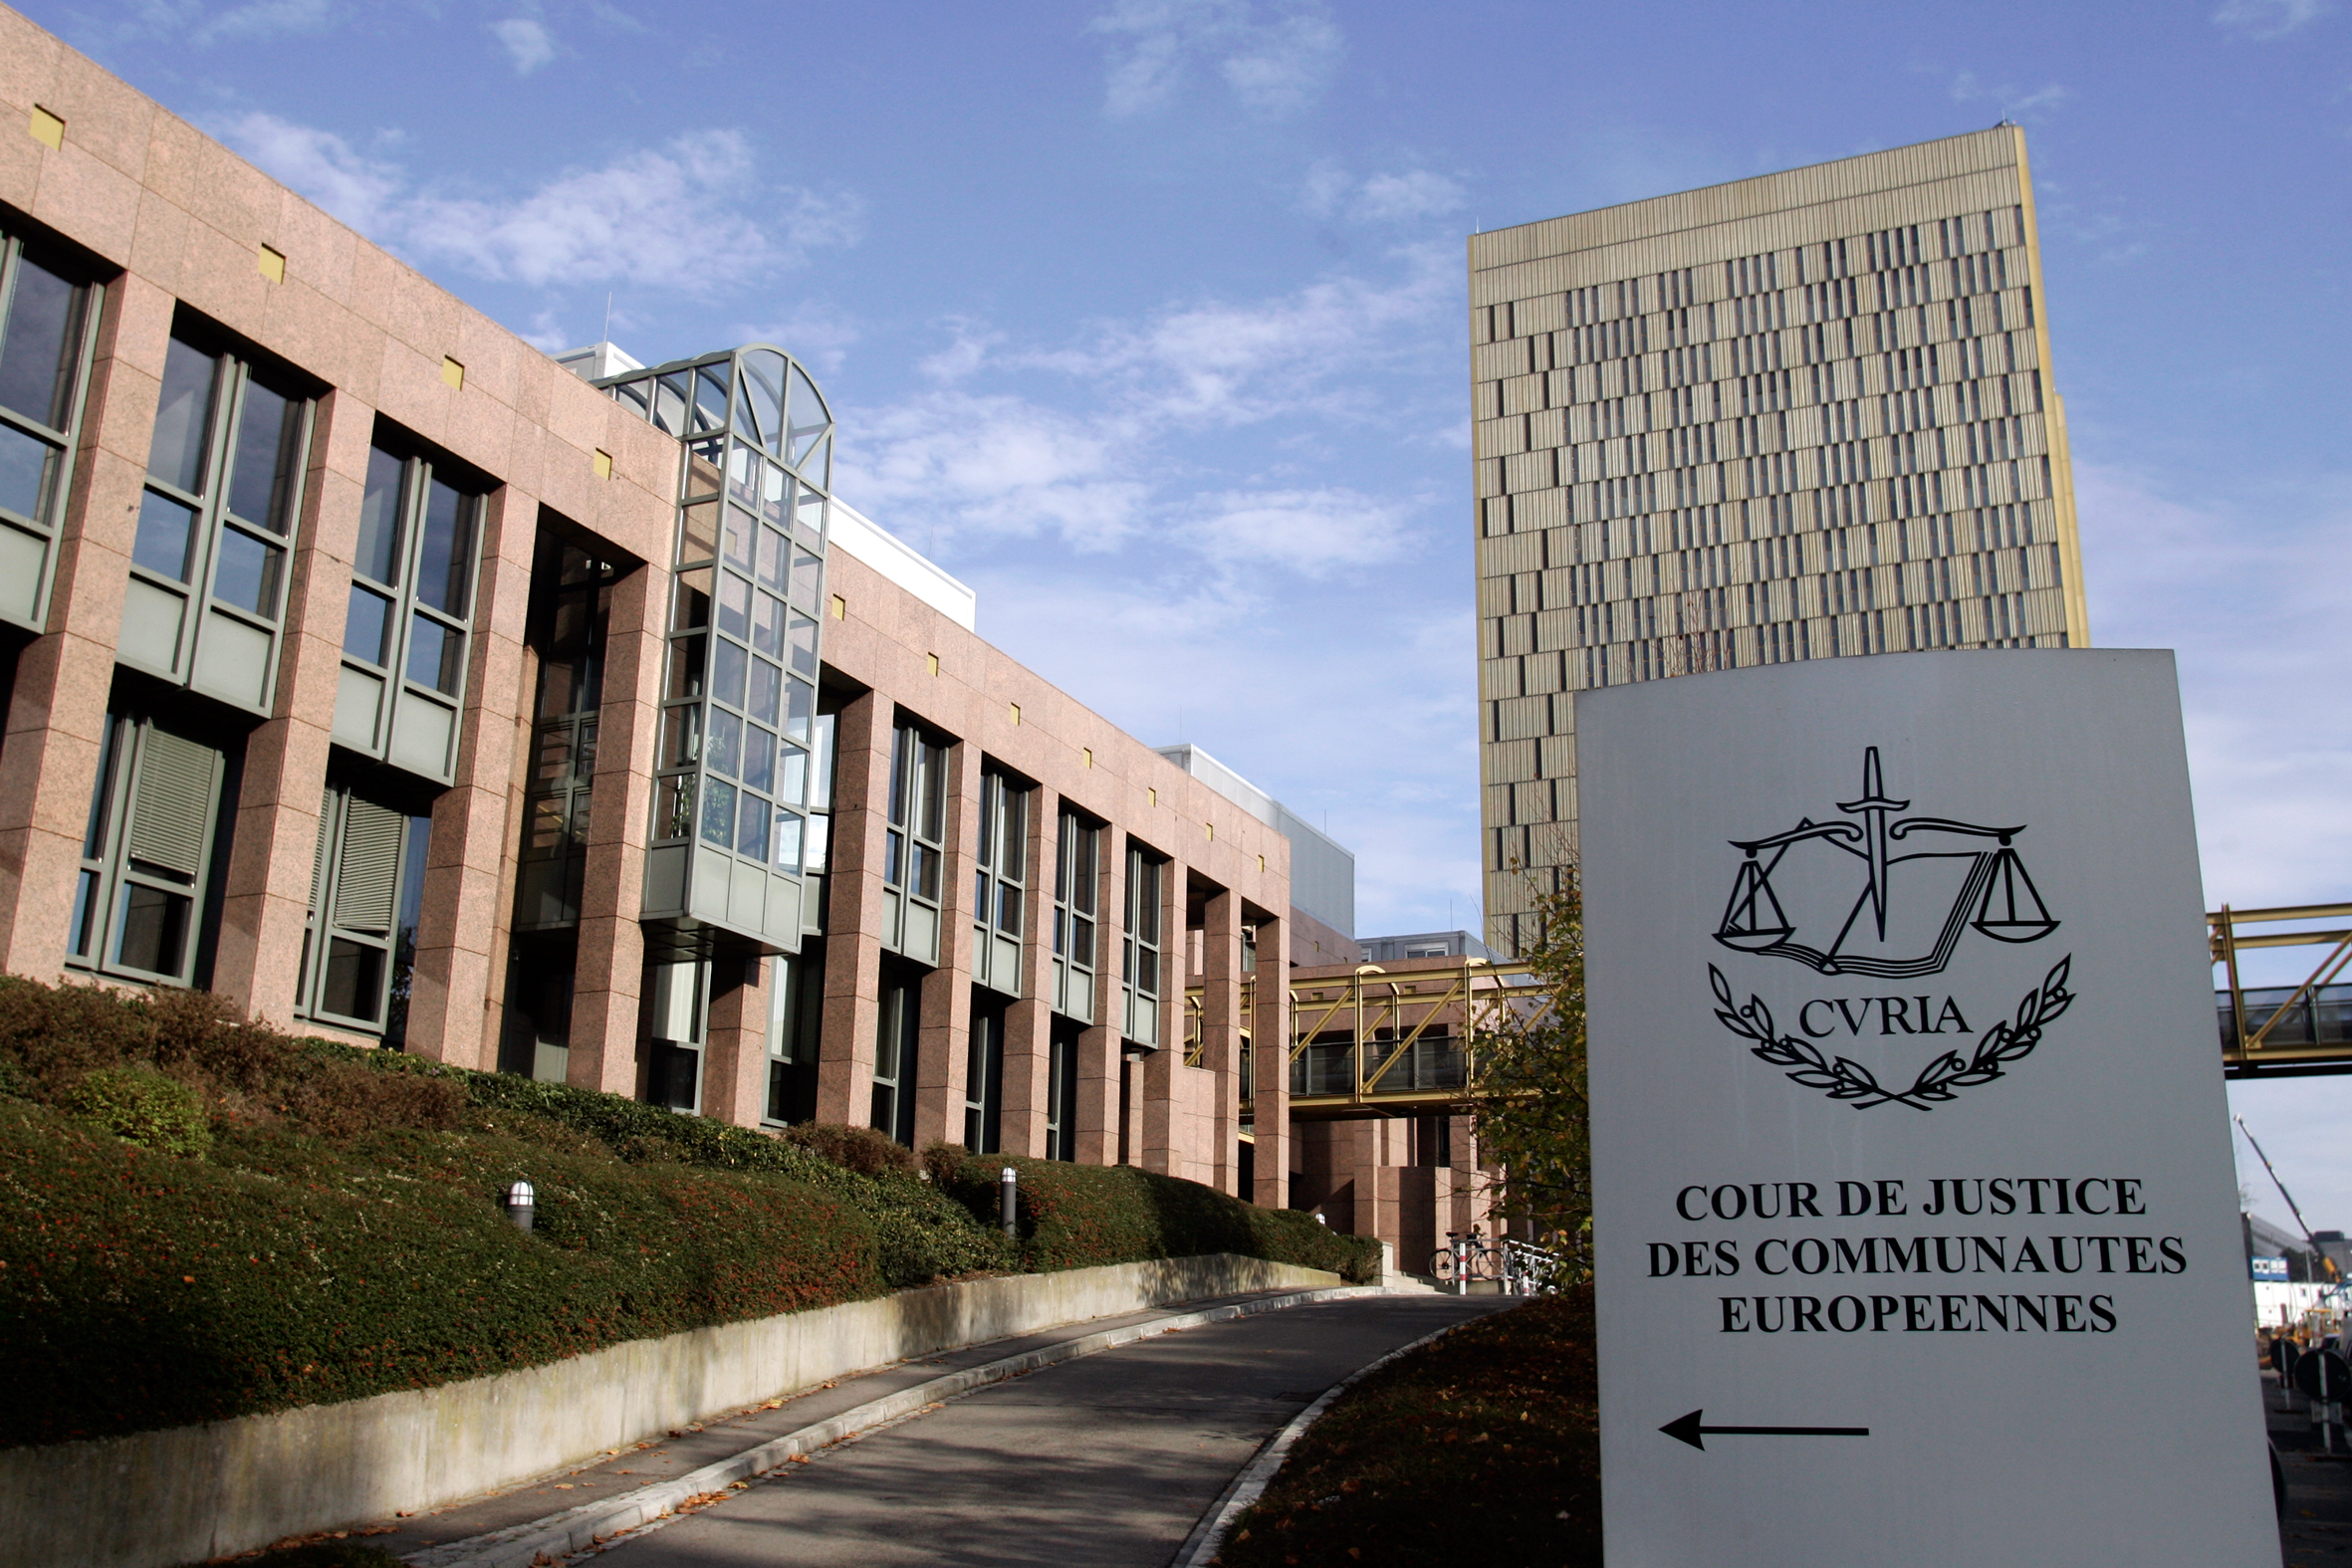 CJEU makes an important new judgment on data retention